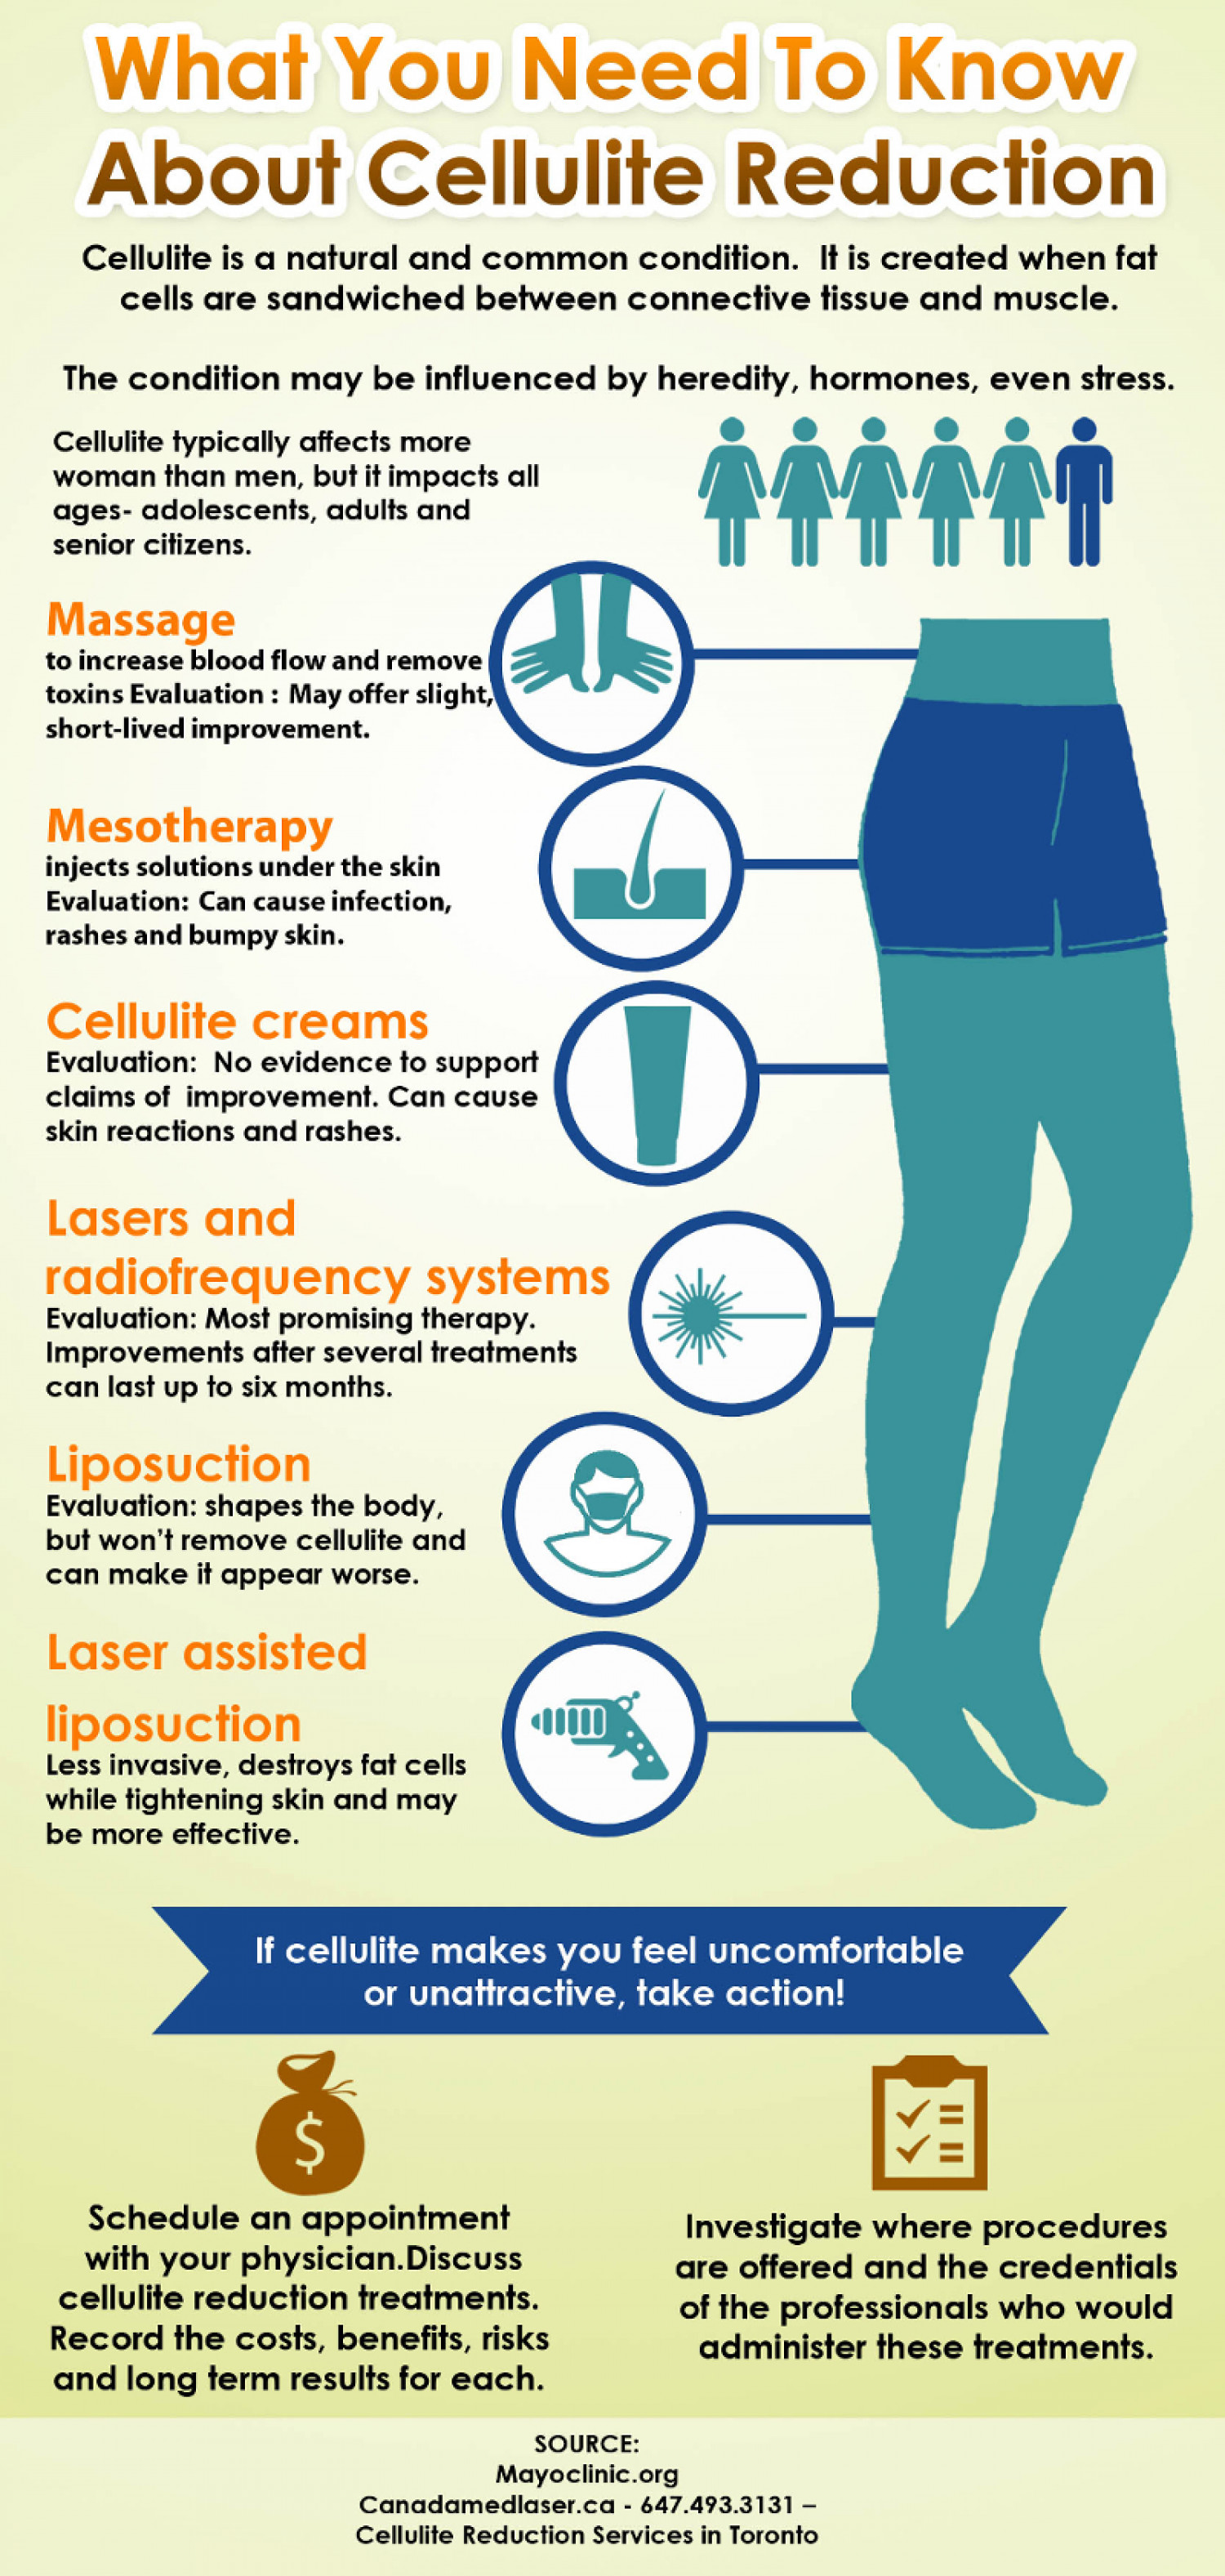 What You Need To Know About Cellulite Reduction Infographic